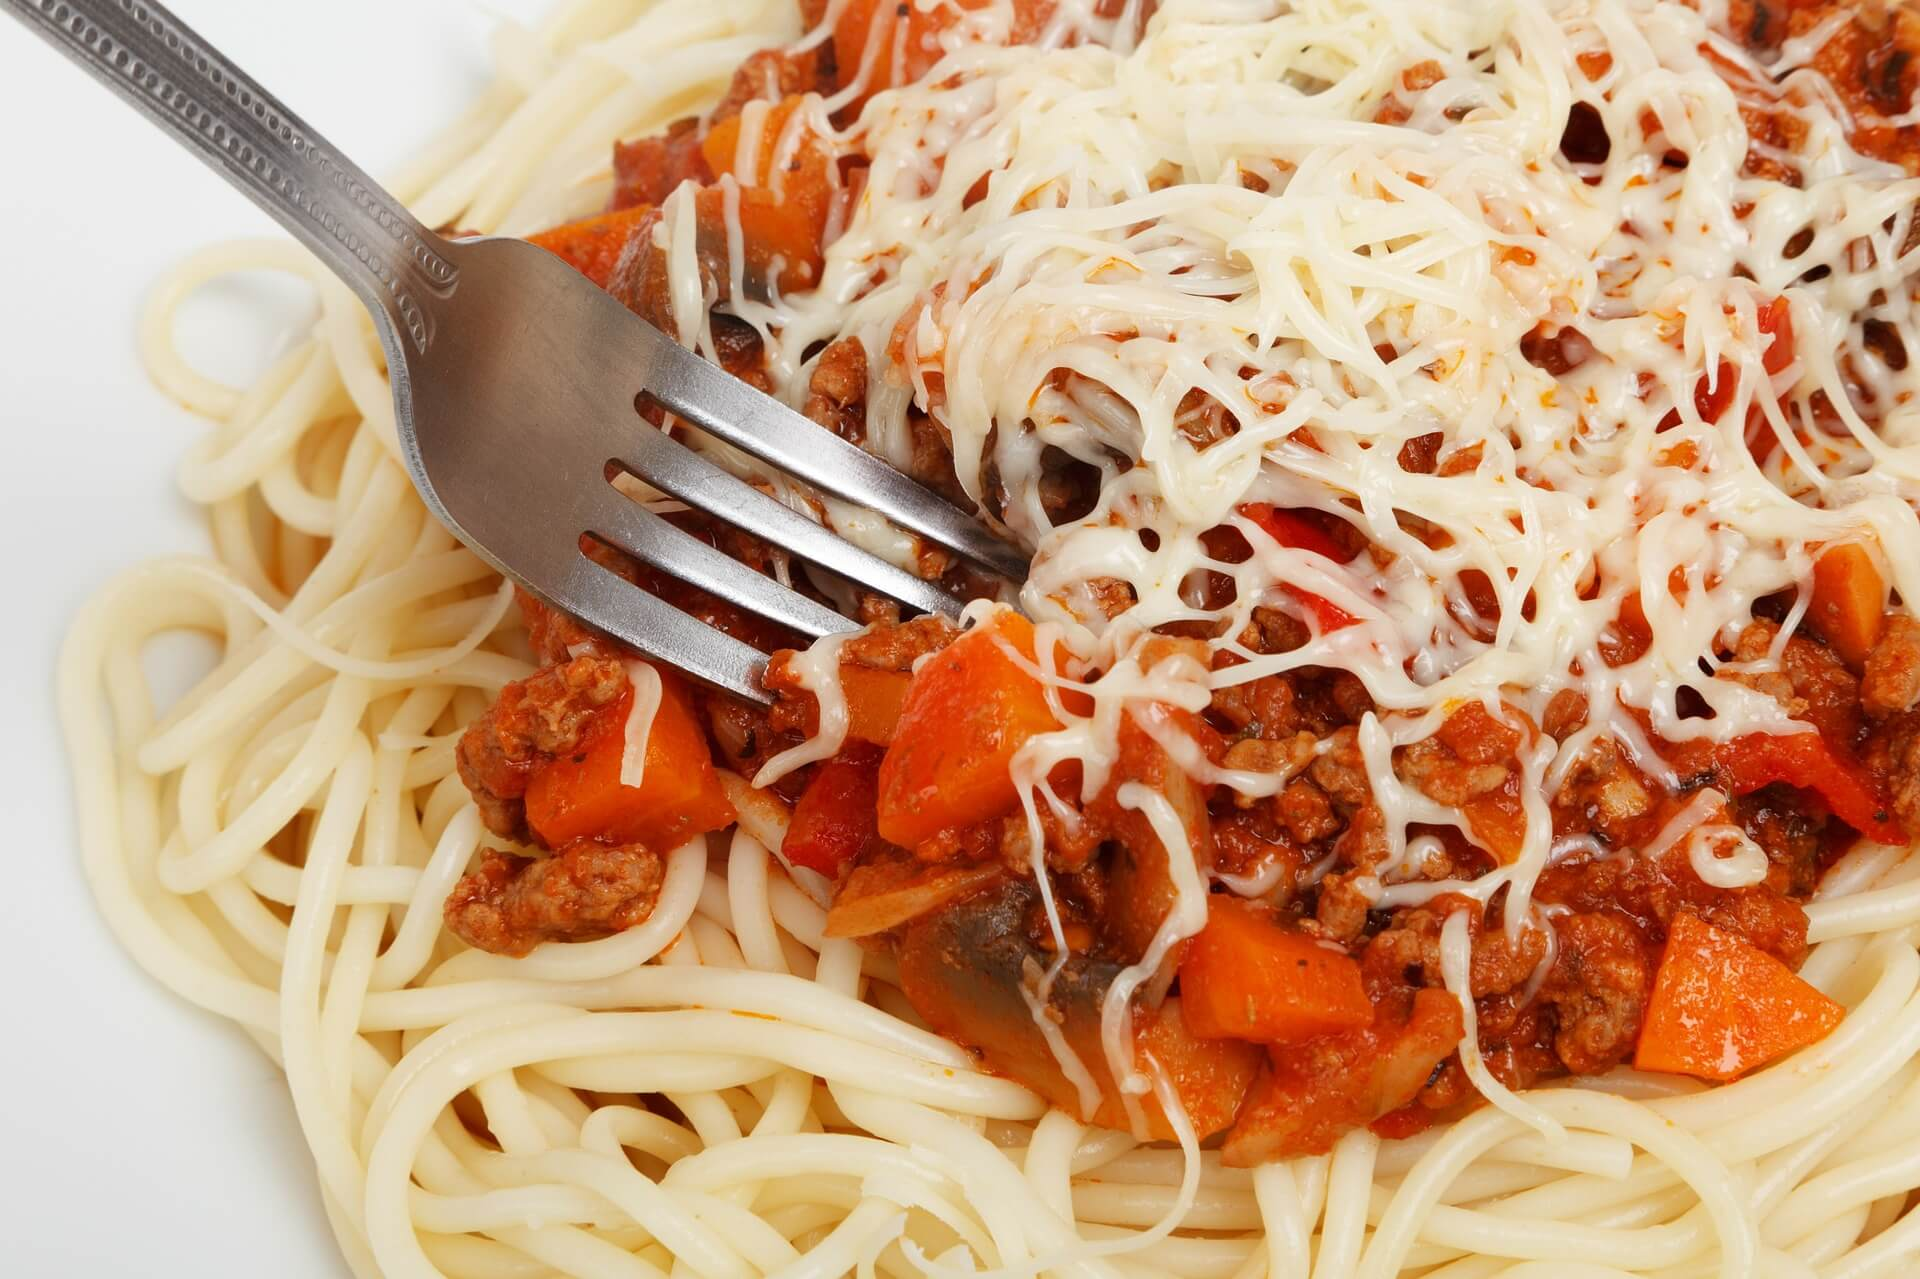 Fork tines in a plate pf pasta with marinara sauce